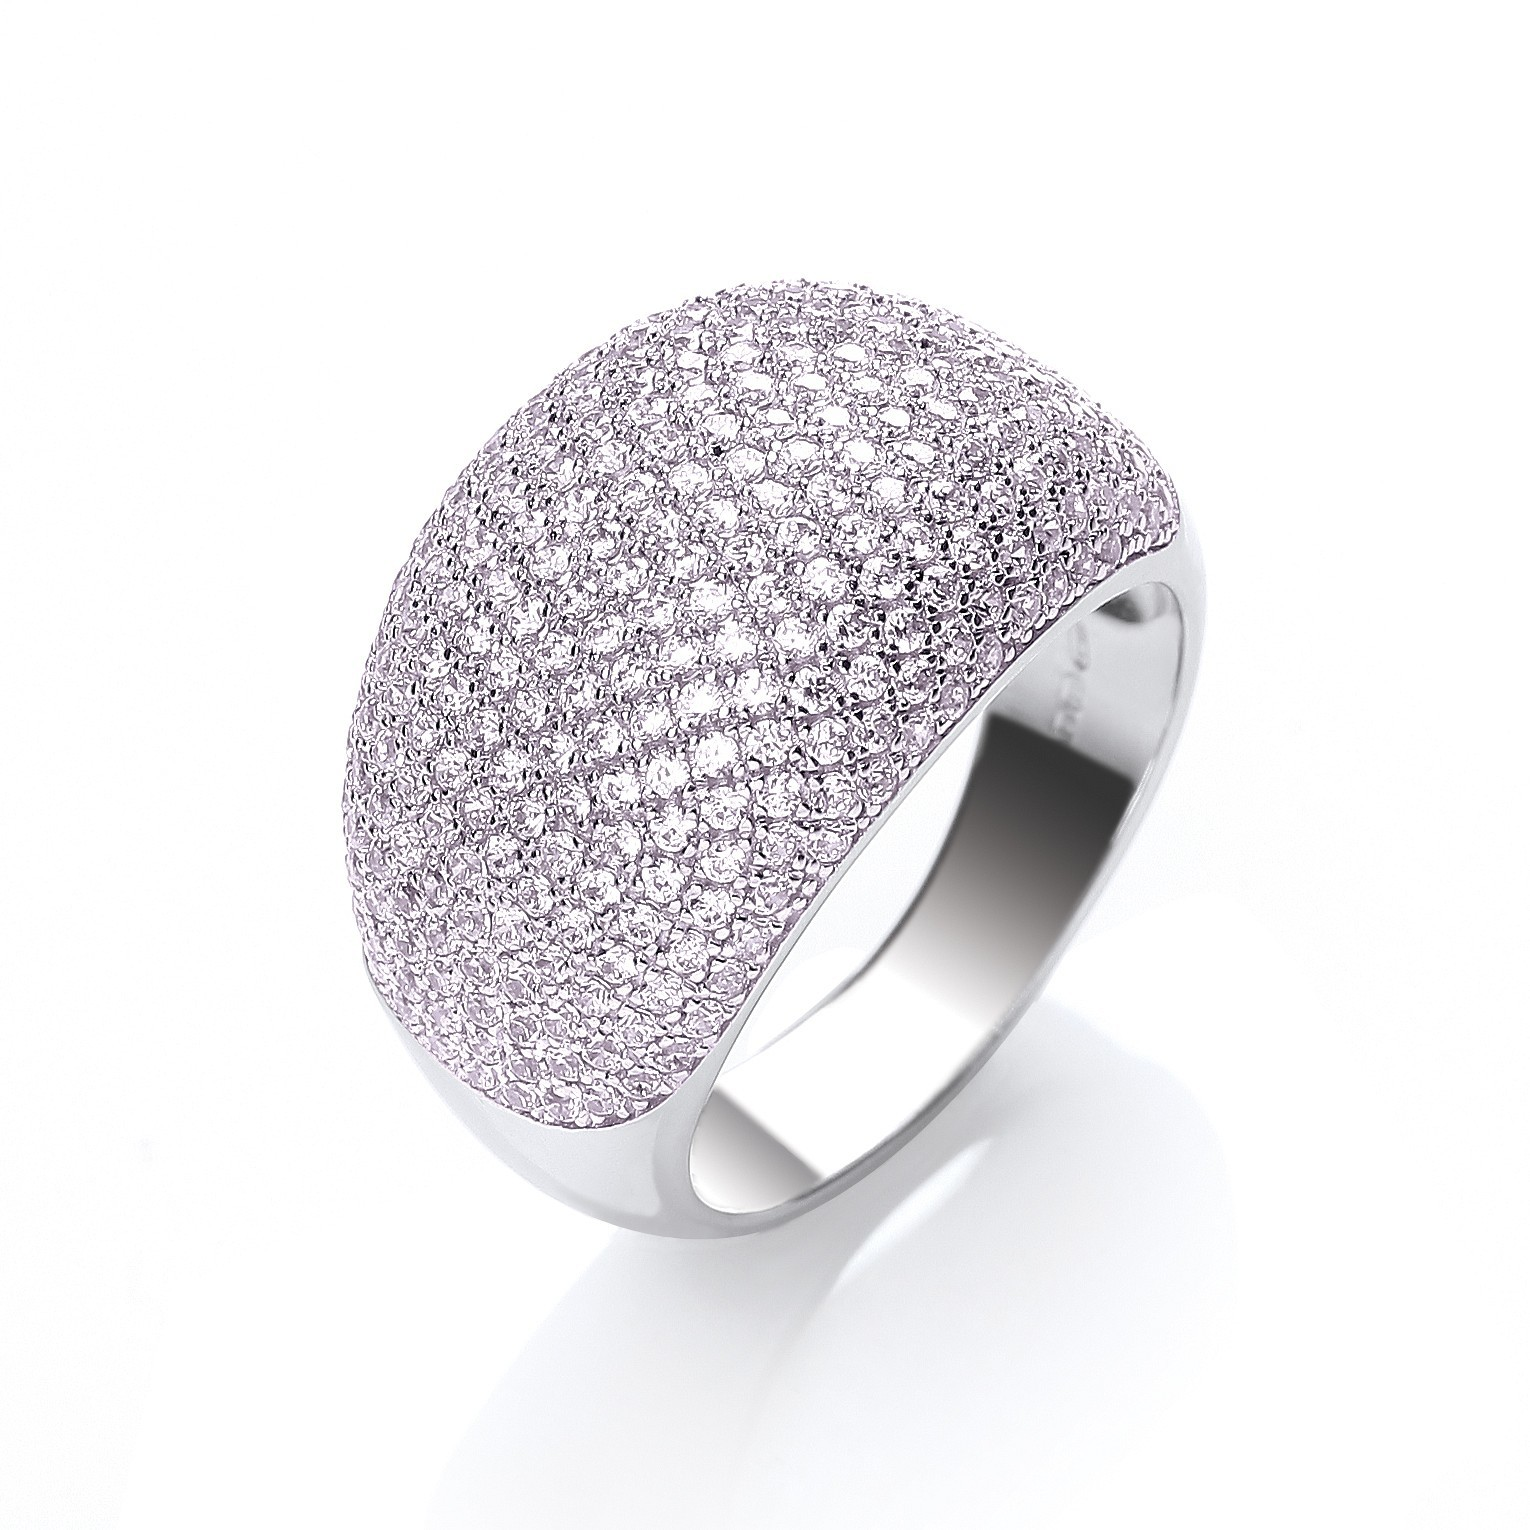 Micro Pave' Cocktail Ring 283 Pink Cz